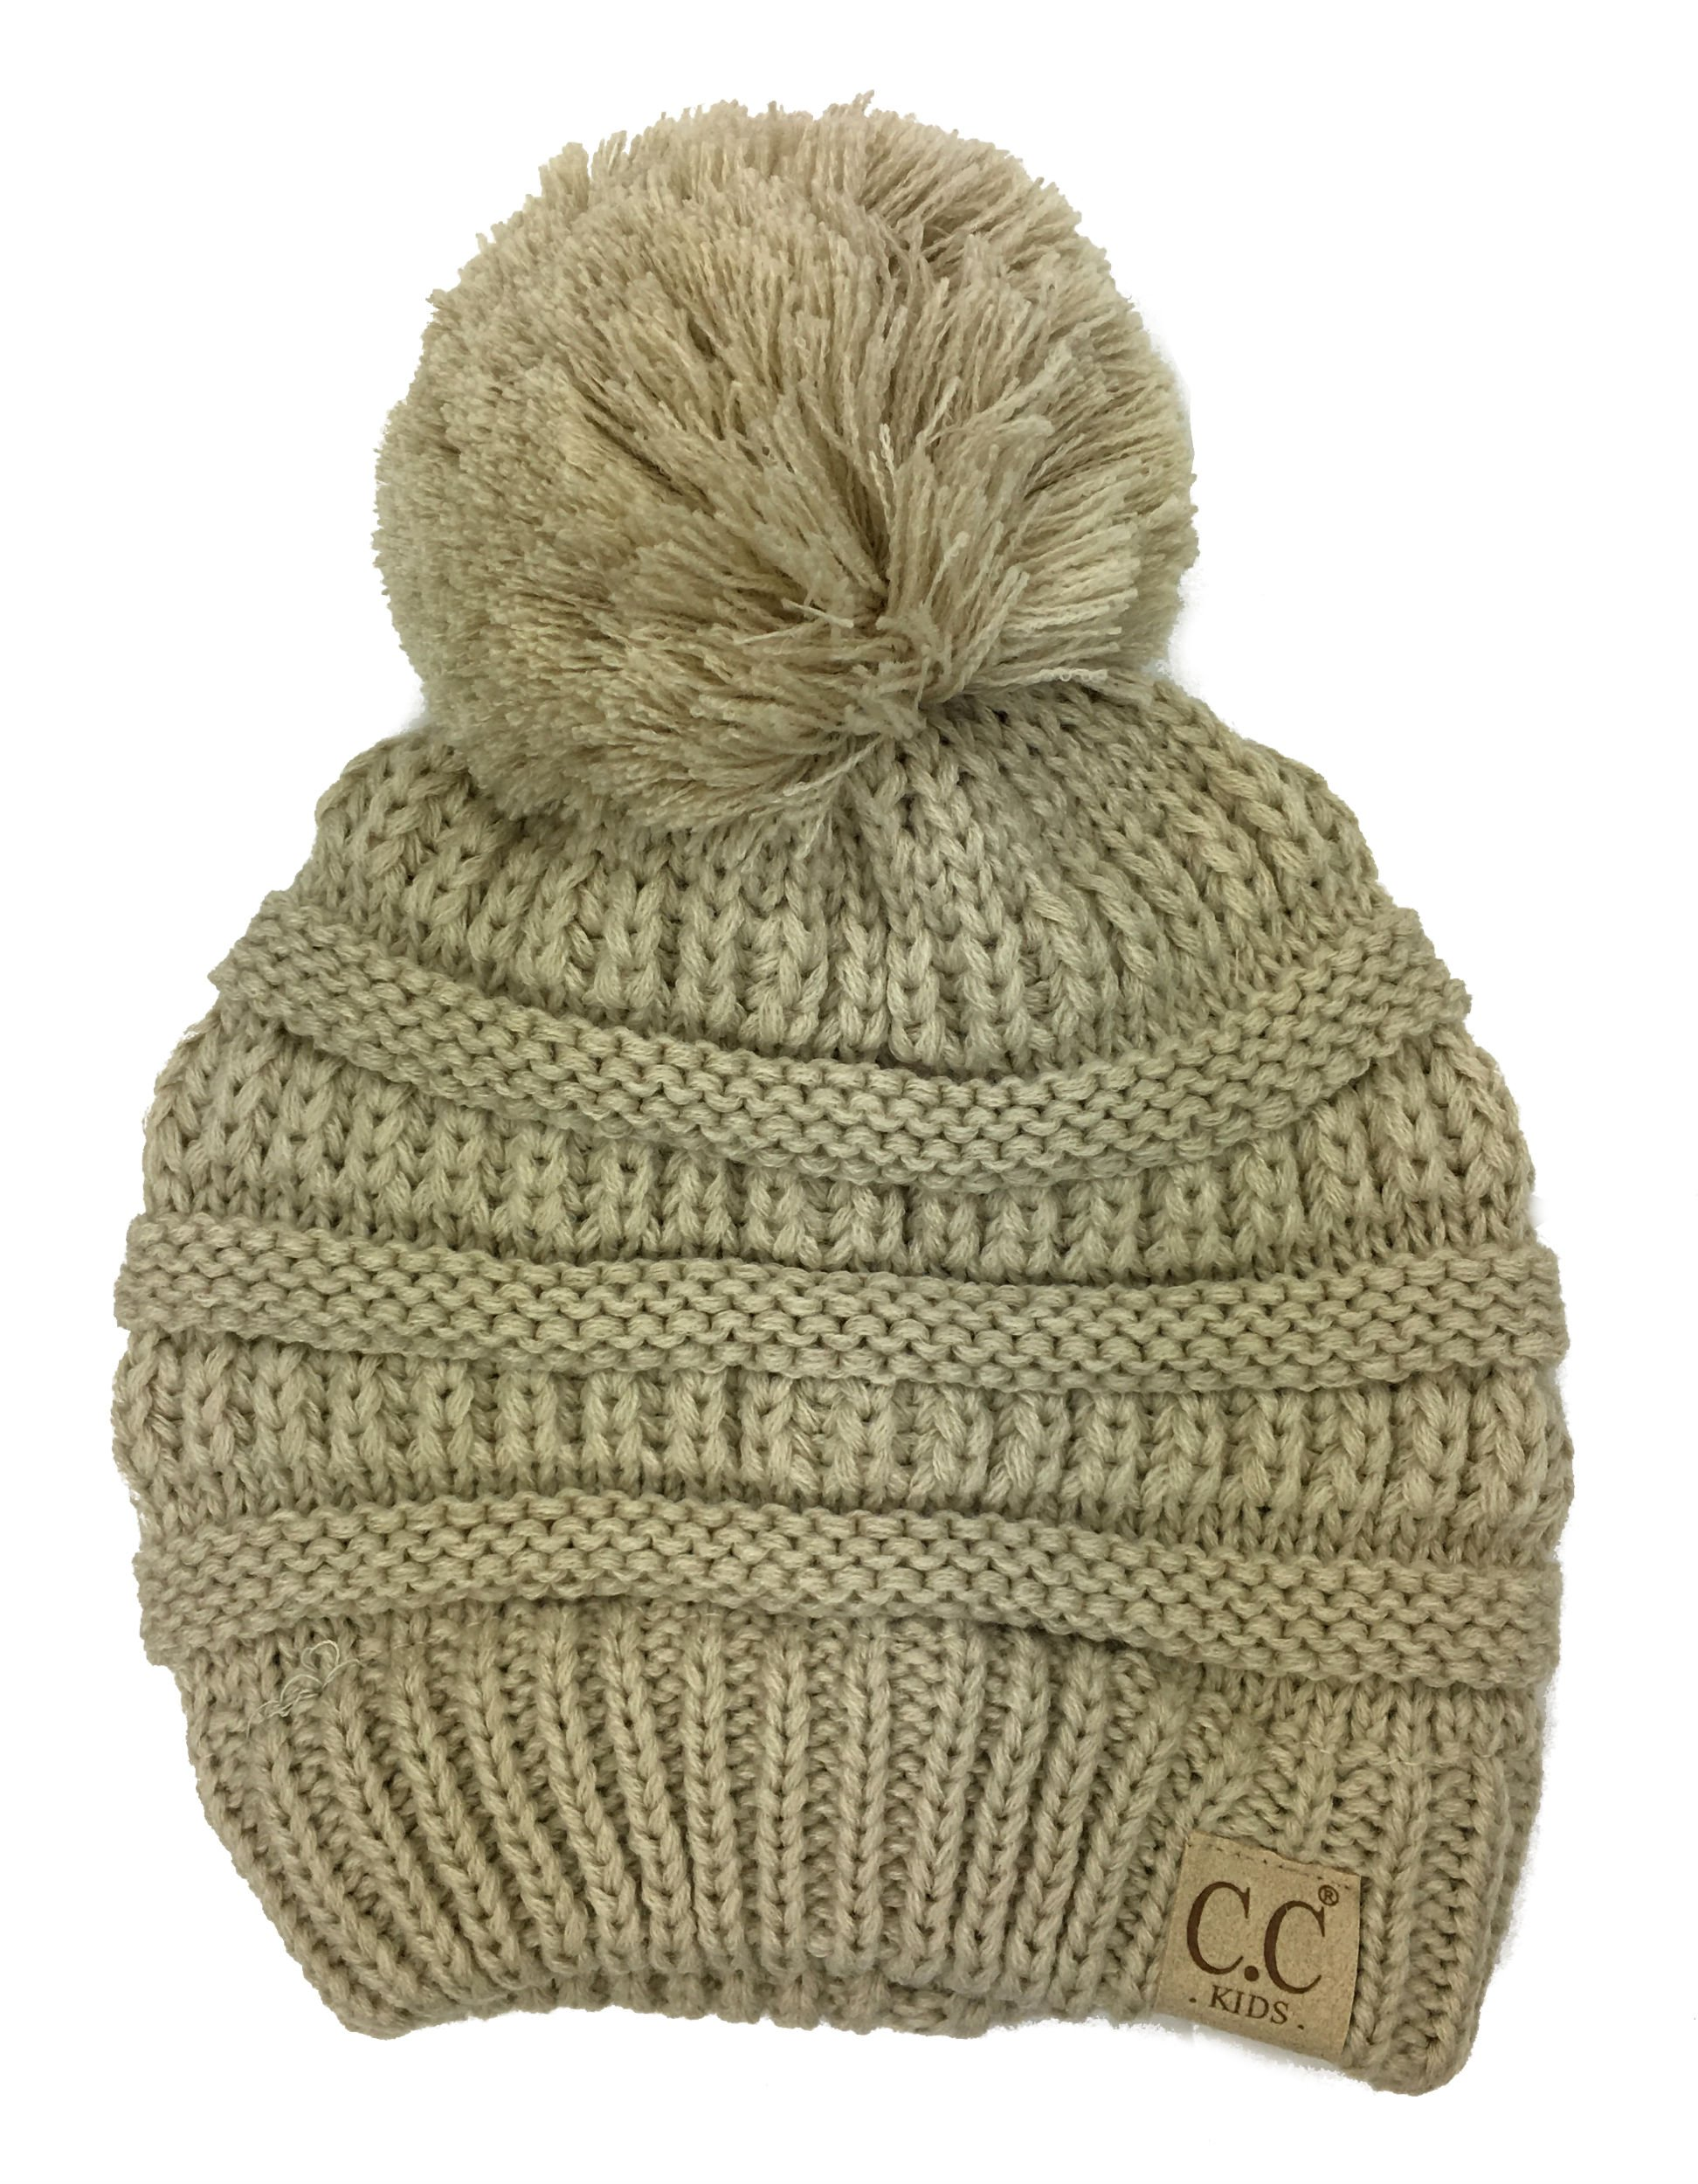 Chunky Thick Stretchy Knit Slouch Pom Pom Beanie Cap Hat for Kids Ages 2-7 (Beige)